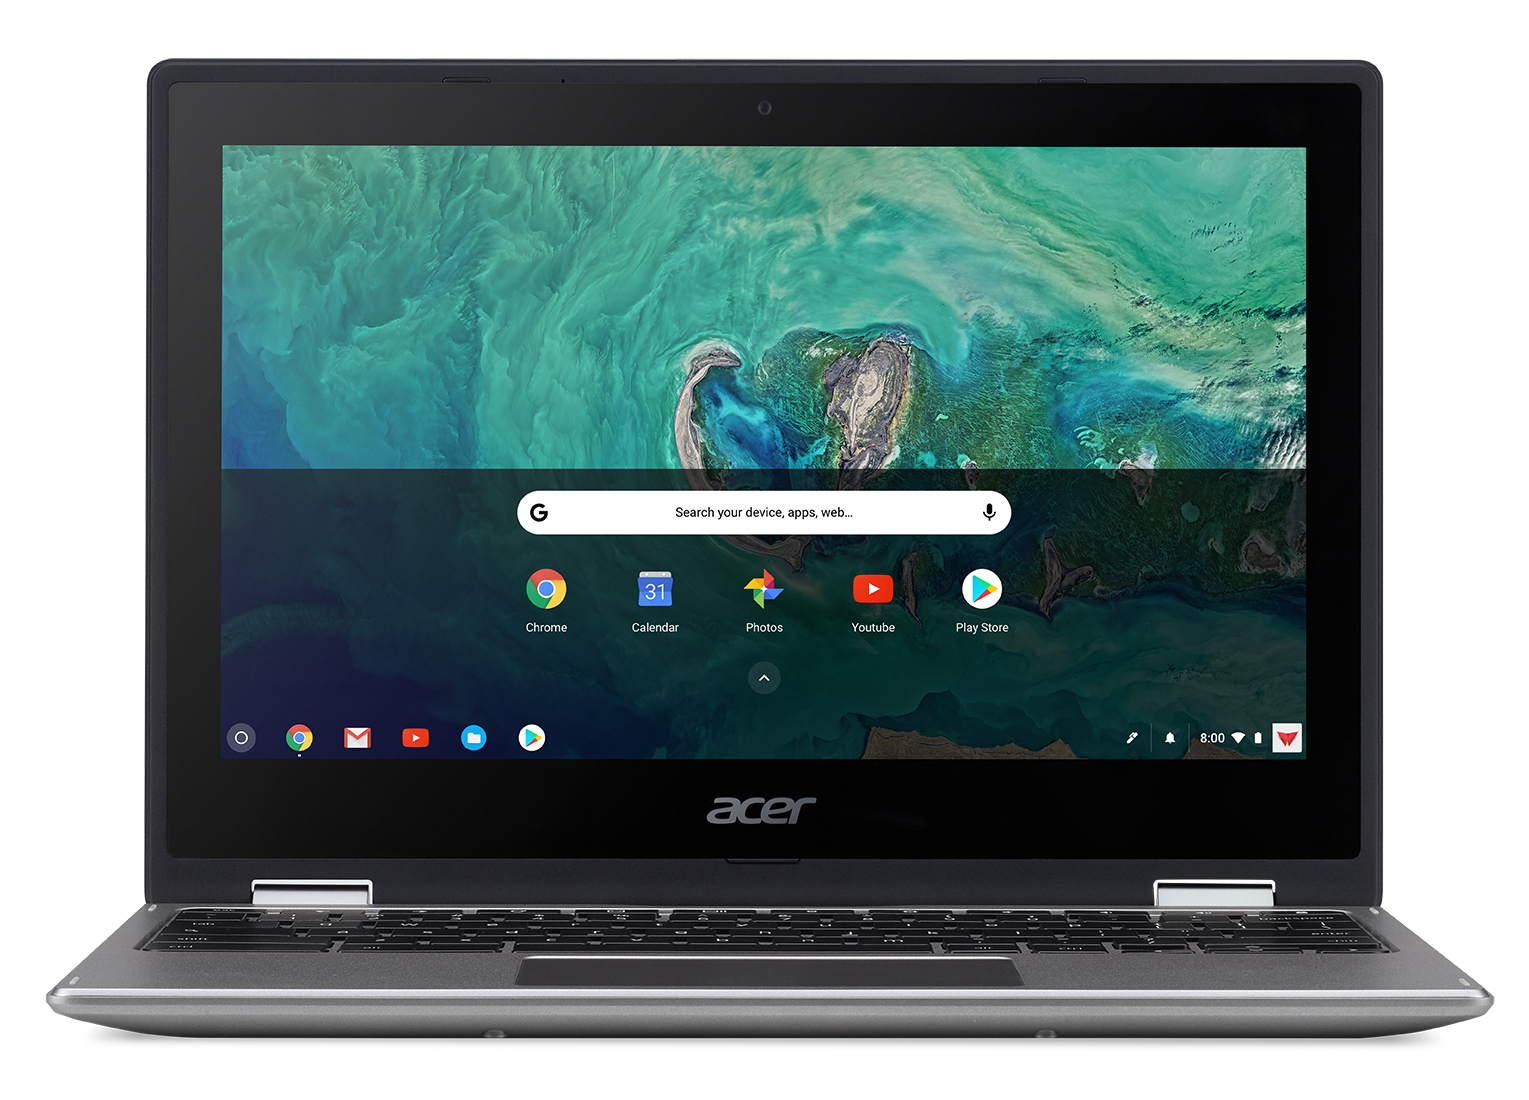 PHOTO BOOTH CHROMEBOOK OPERATING EPUB DOWNLOAD